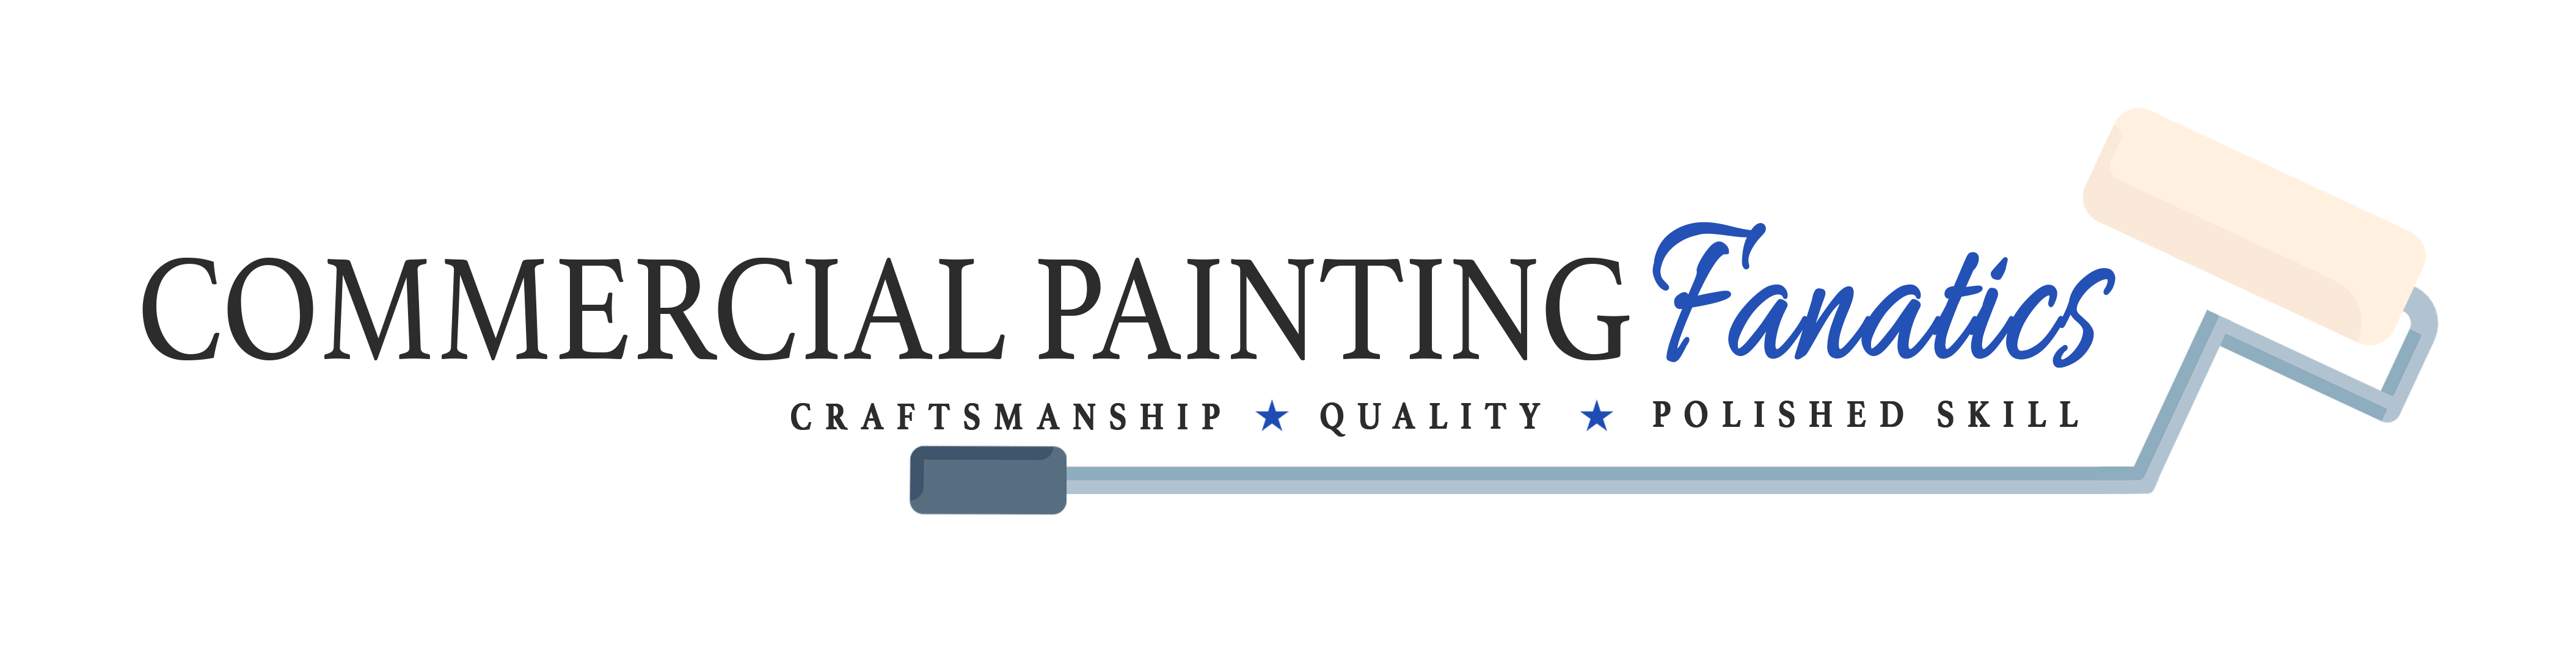 Commercial Painters Toledo Ohio